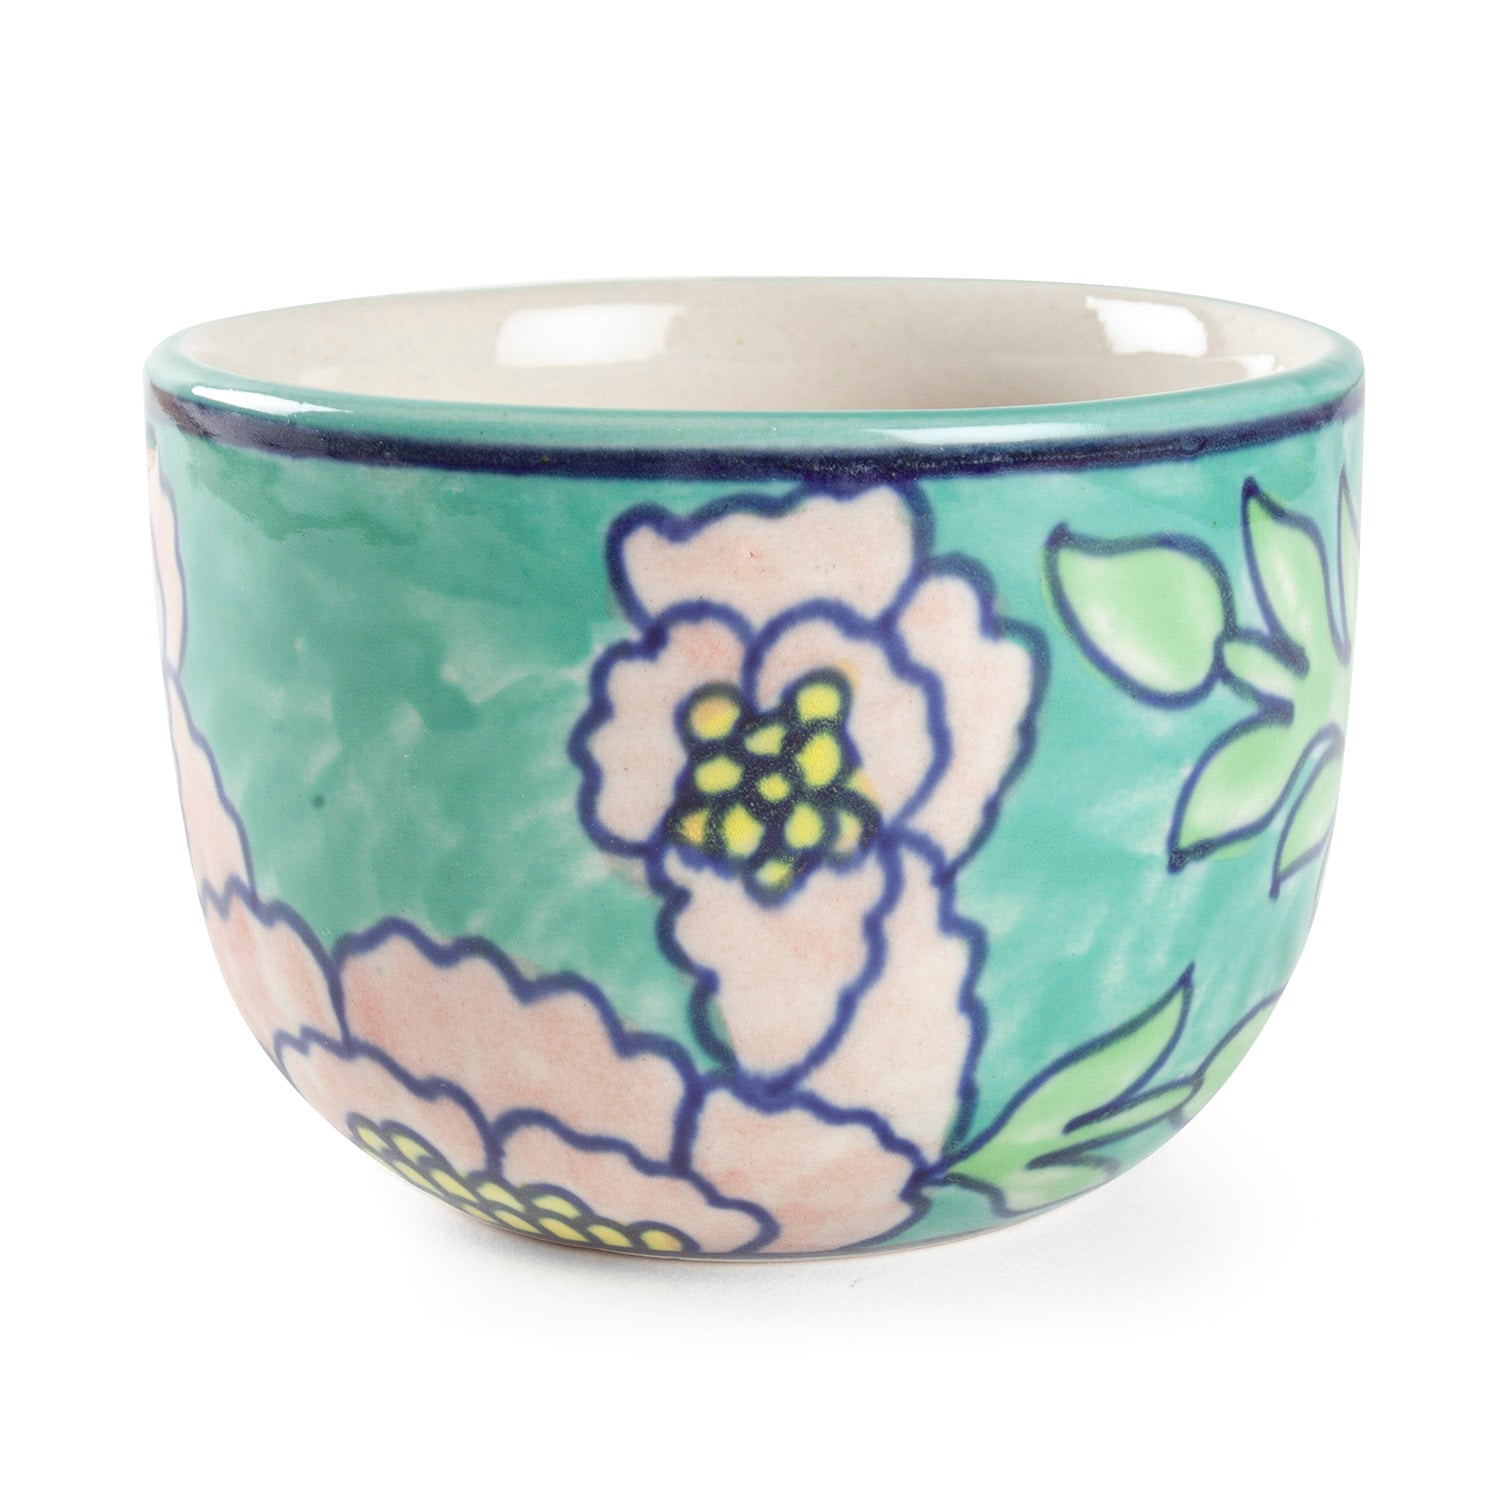 Handpainted Ceramic U Bowls - 4x3